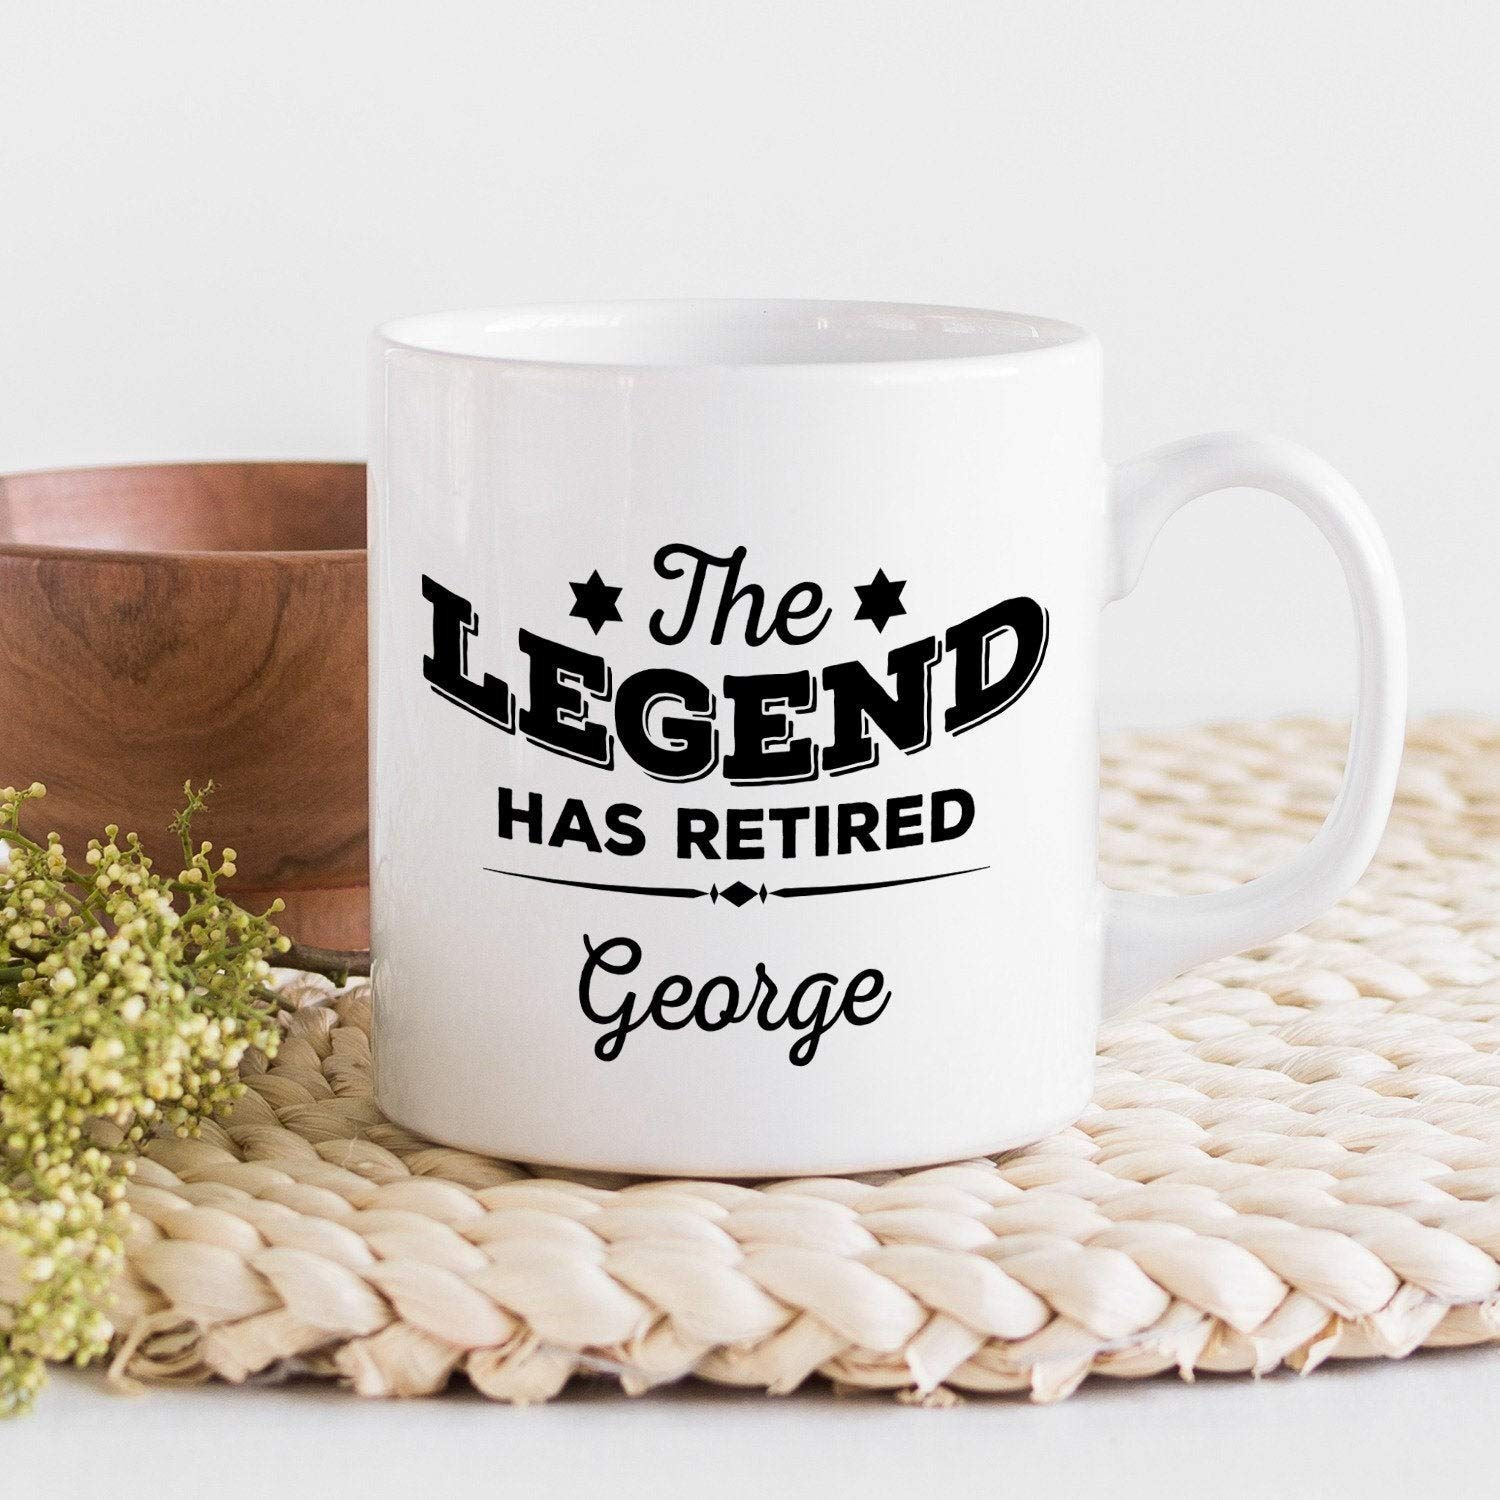 Personalised retirement gift//The legend has retired mug//Retirement gift for him or her//Retired mugs//Leaving job gift